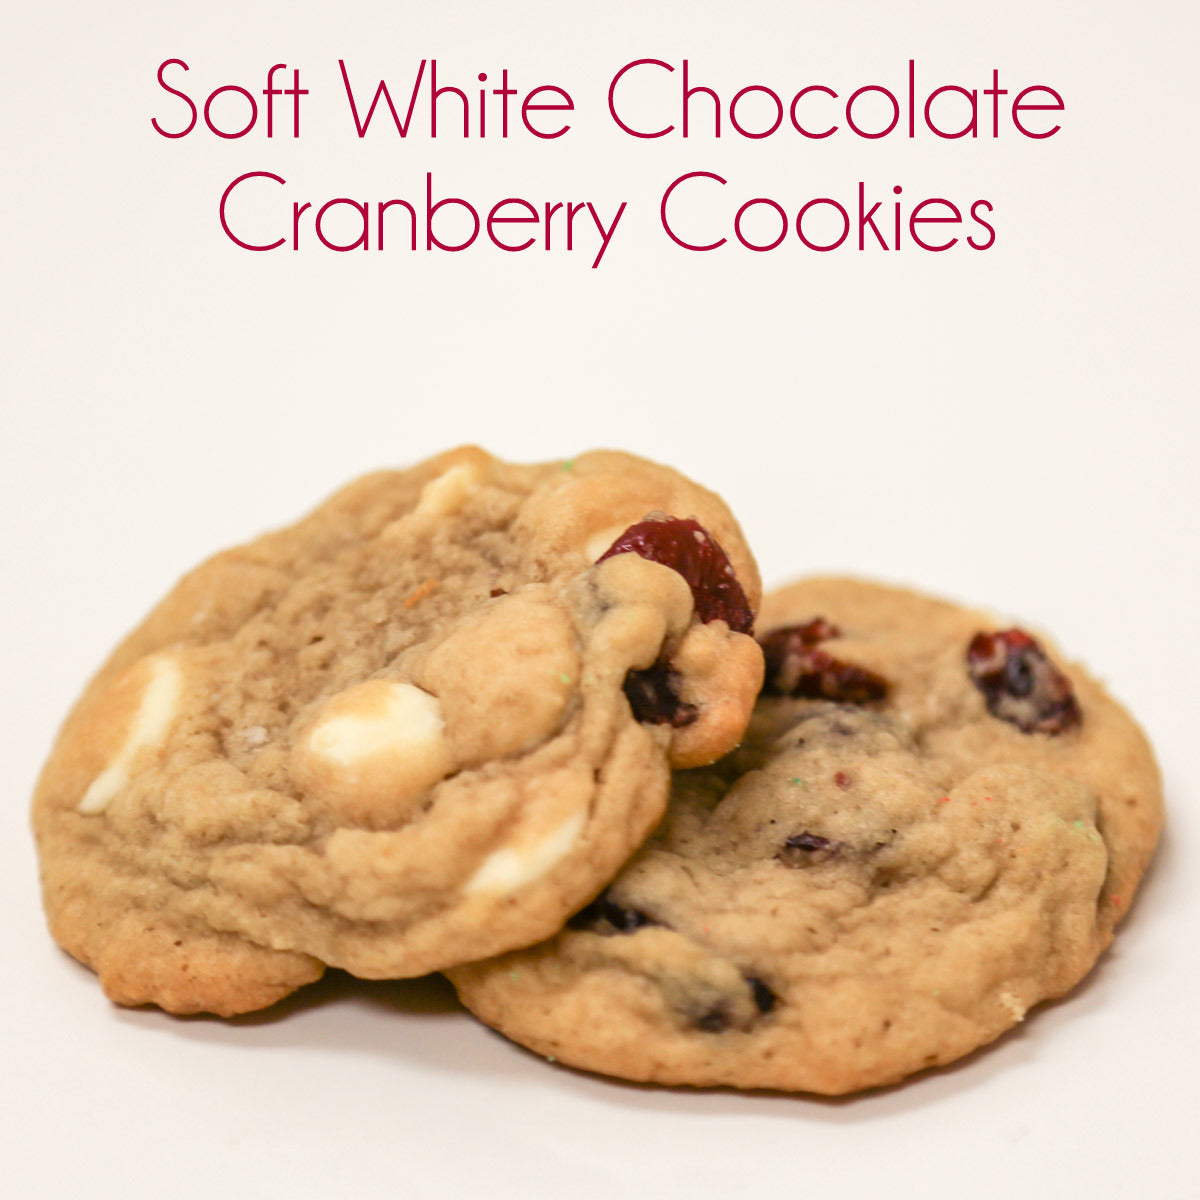 Aunt Ana's Soft White Chocolate Cranberry Cookies from Smocked Auctions #12DaysOfChristmasCookies